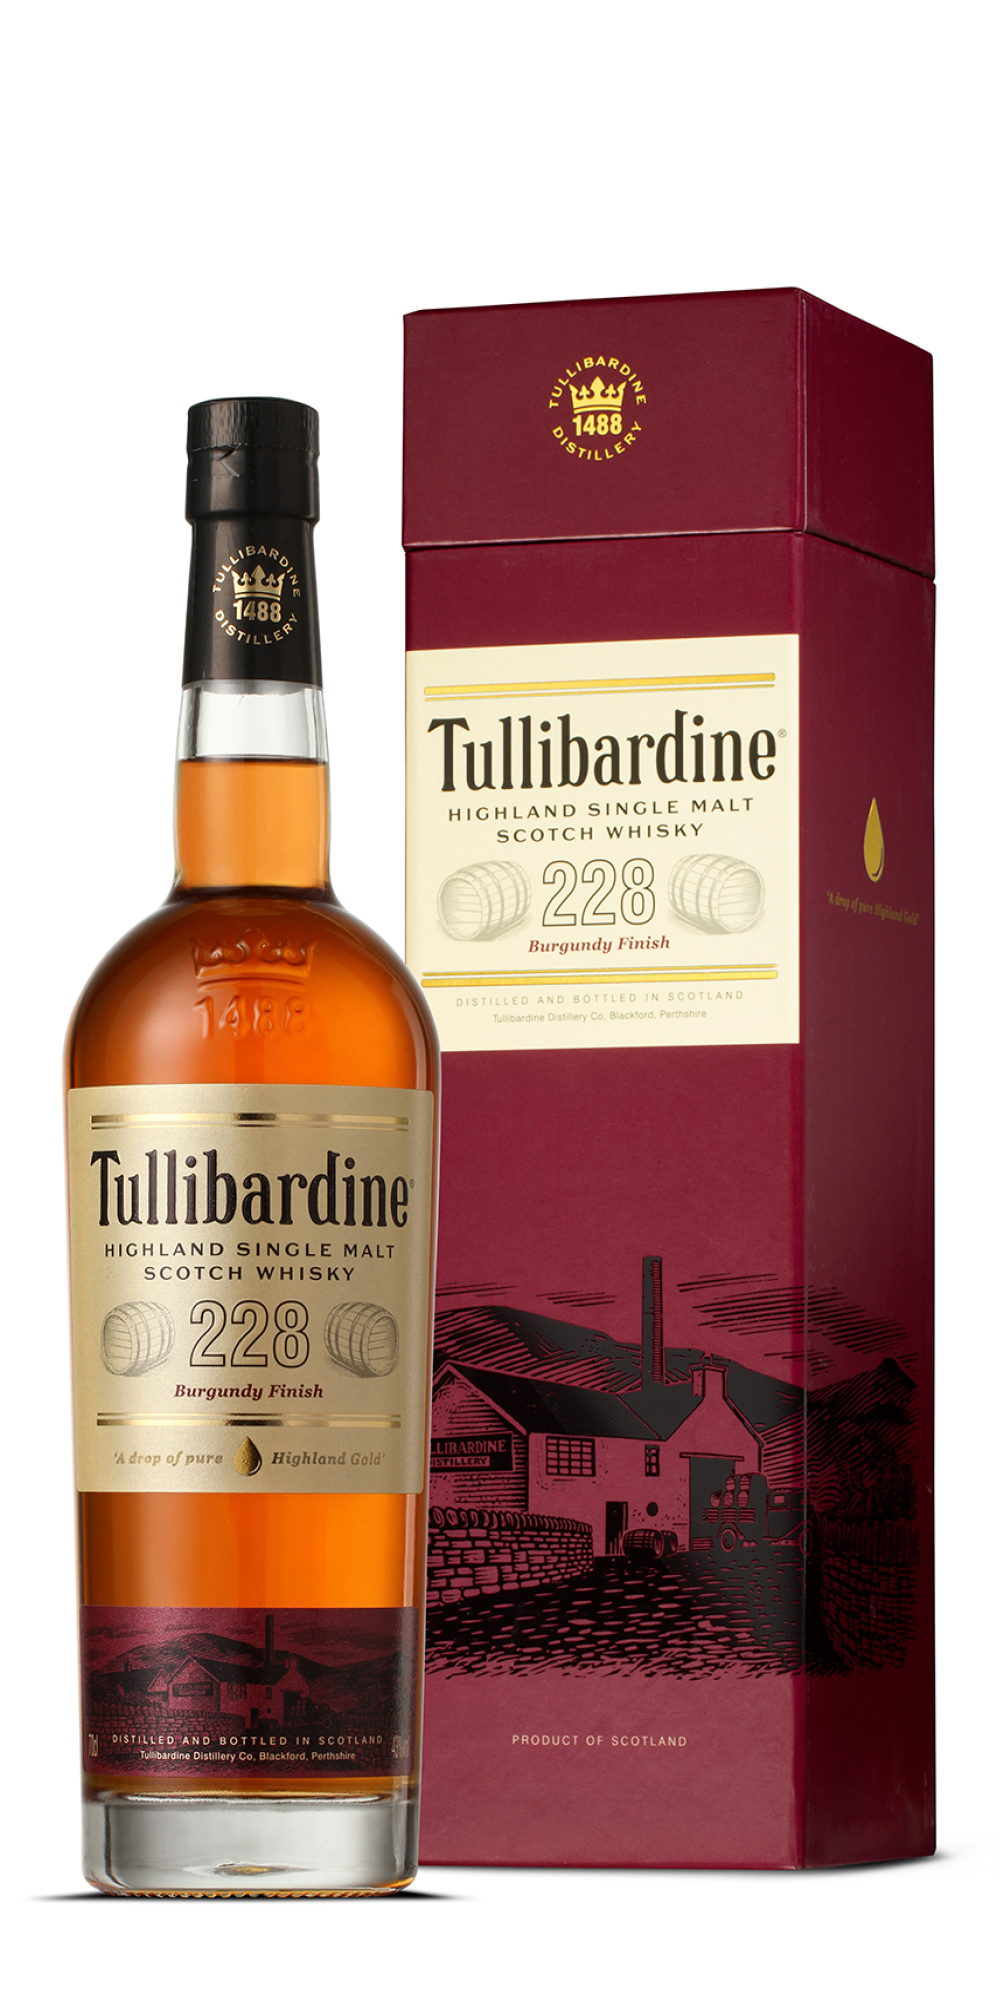 Tullibardine Burgundy Finish 223